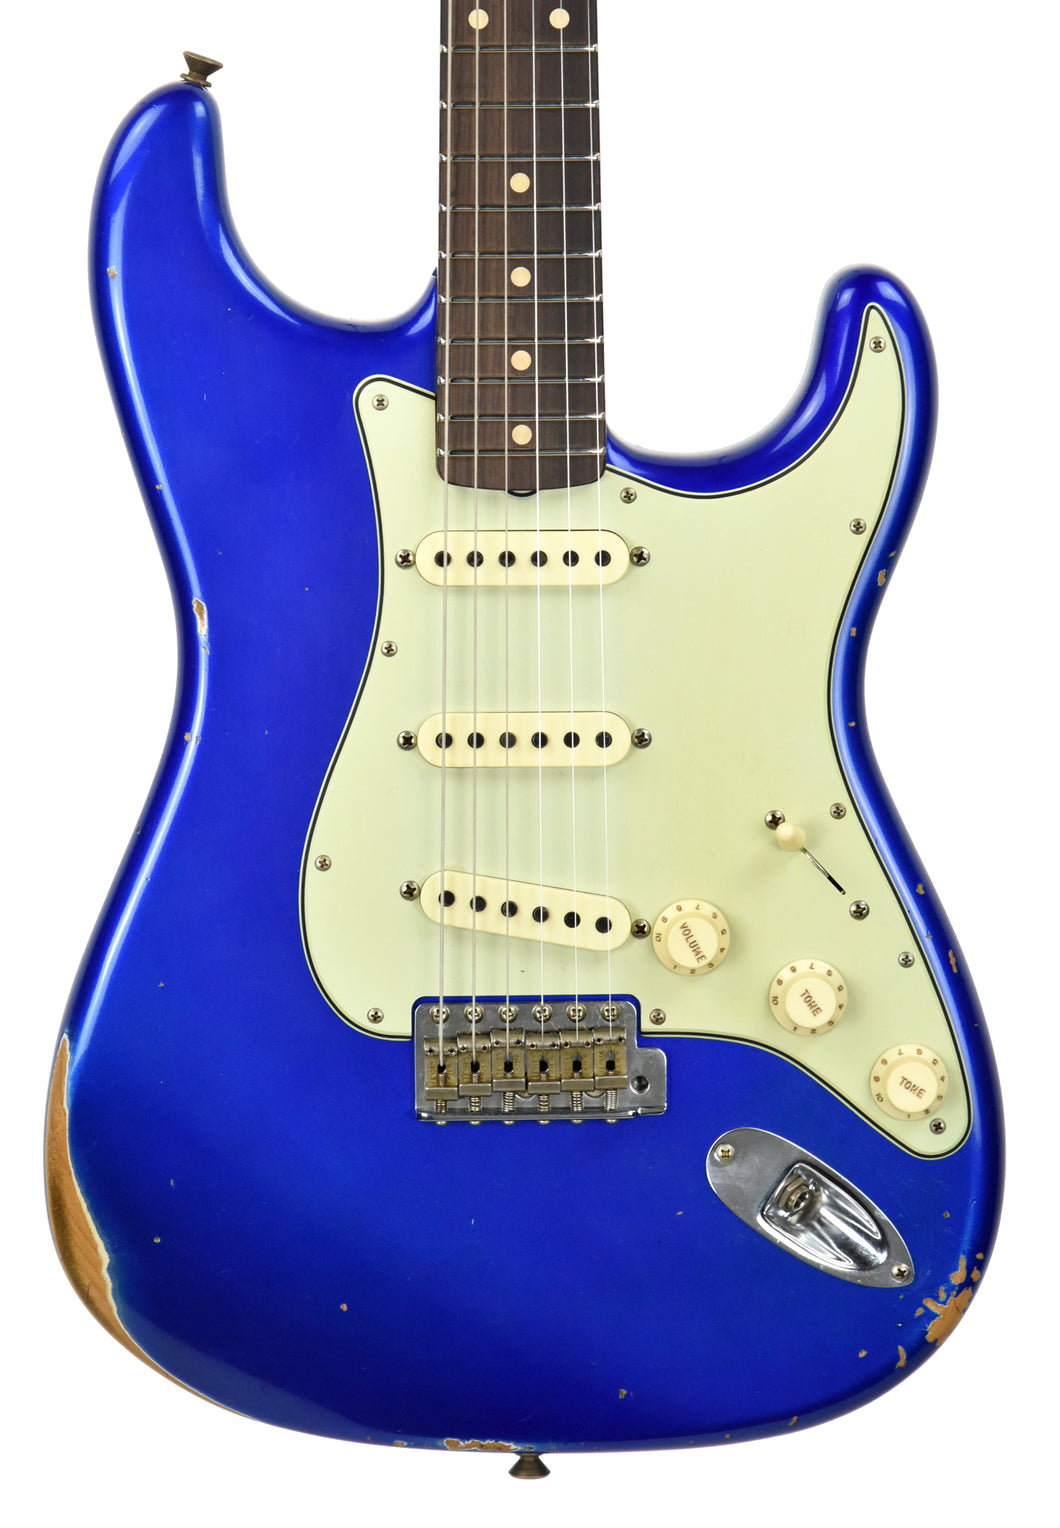 Fender Custom Shop 1961 Stratocaster Relic Cobalt Blue Metallic CZ537704 - The Music Gallery